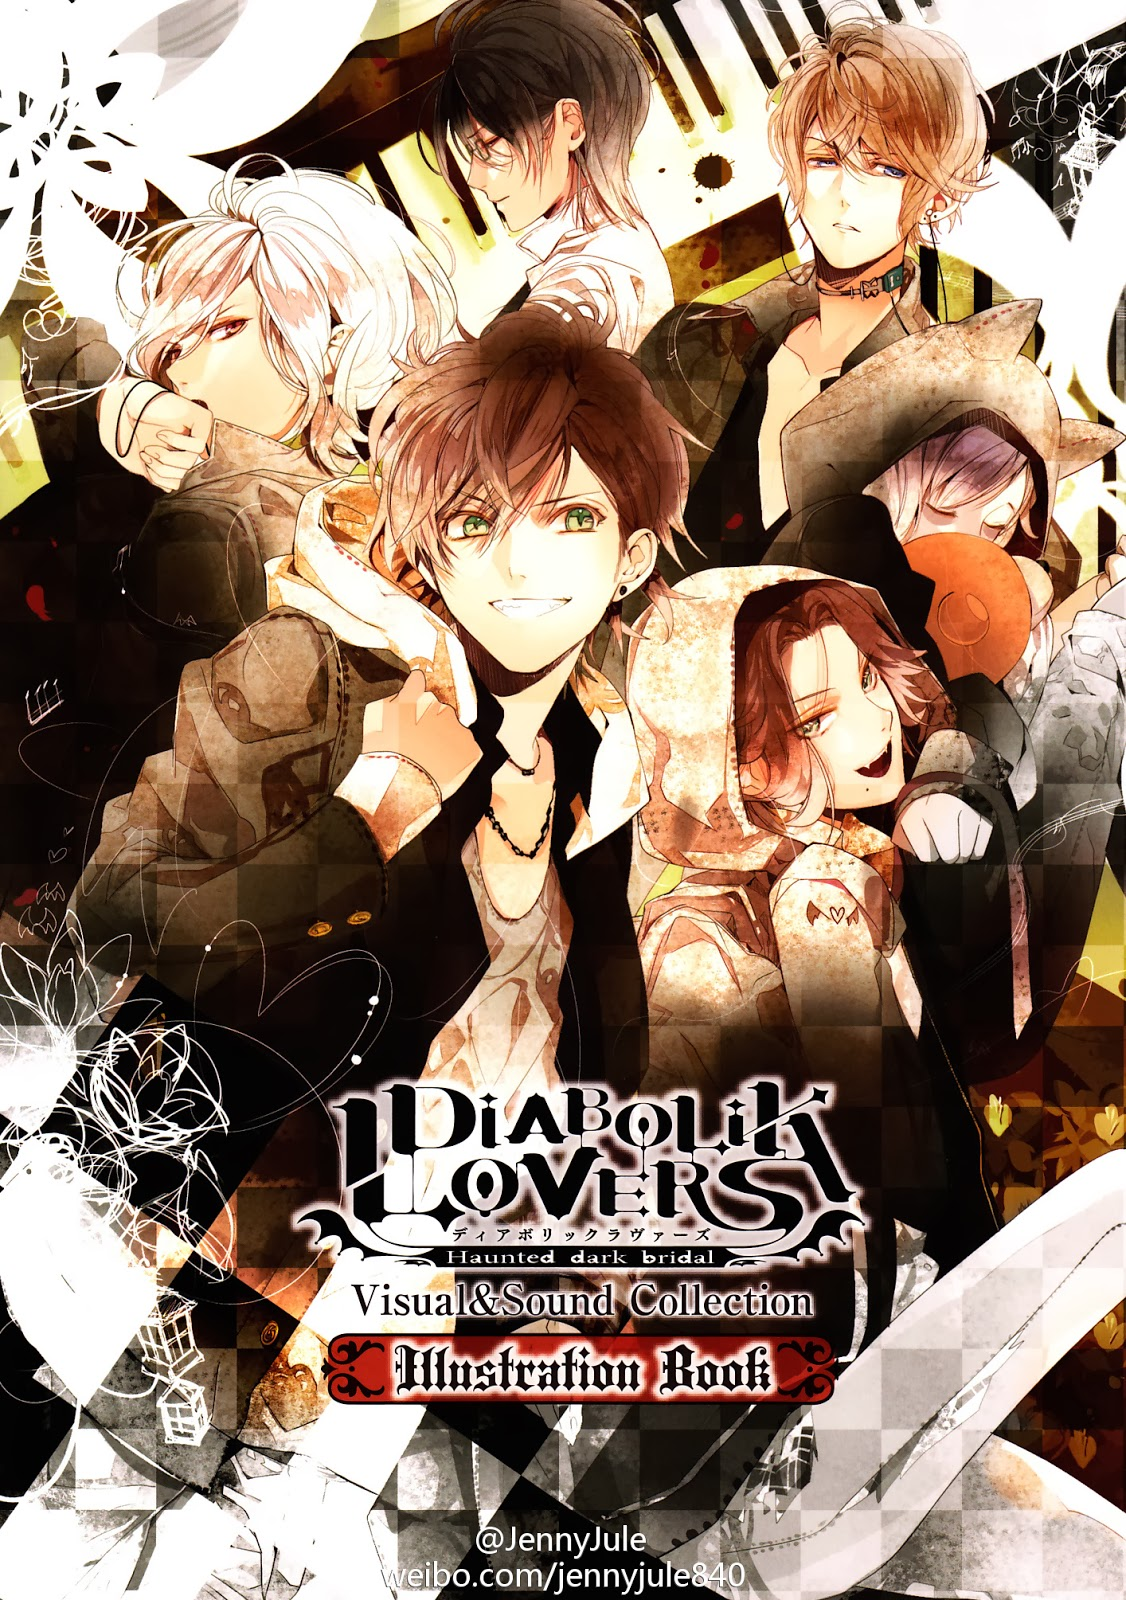 Here is some awesome animes if you are in the halloween mood title diabolik lovers genres romance comedy